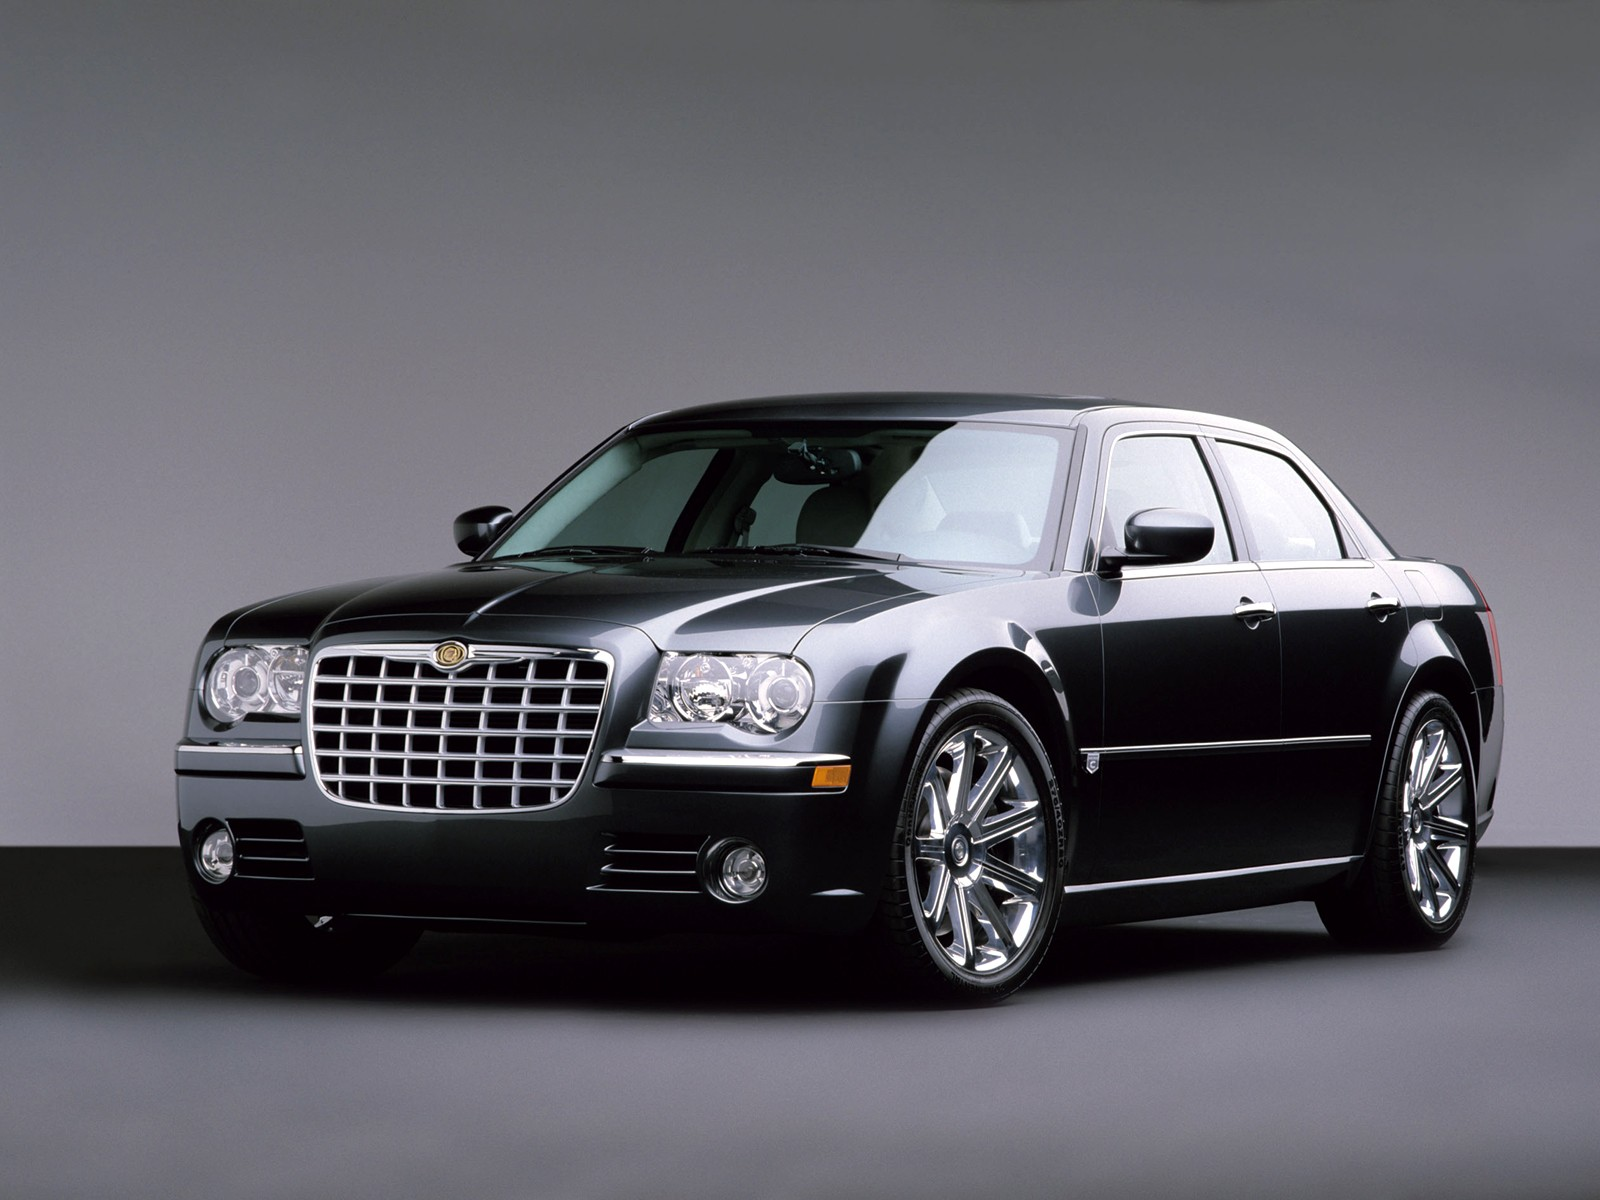 2005 chrysler 300c with Search on Hhp414ksb57 further File Chrysler 300C SRT8 as well Chrysler Pacifica Cars Wallpapers likewise Chrysler C300 E 300c further Chrysler 300c.